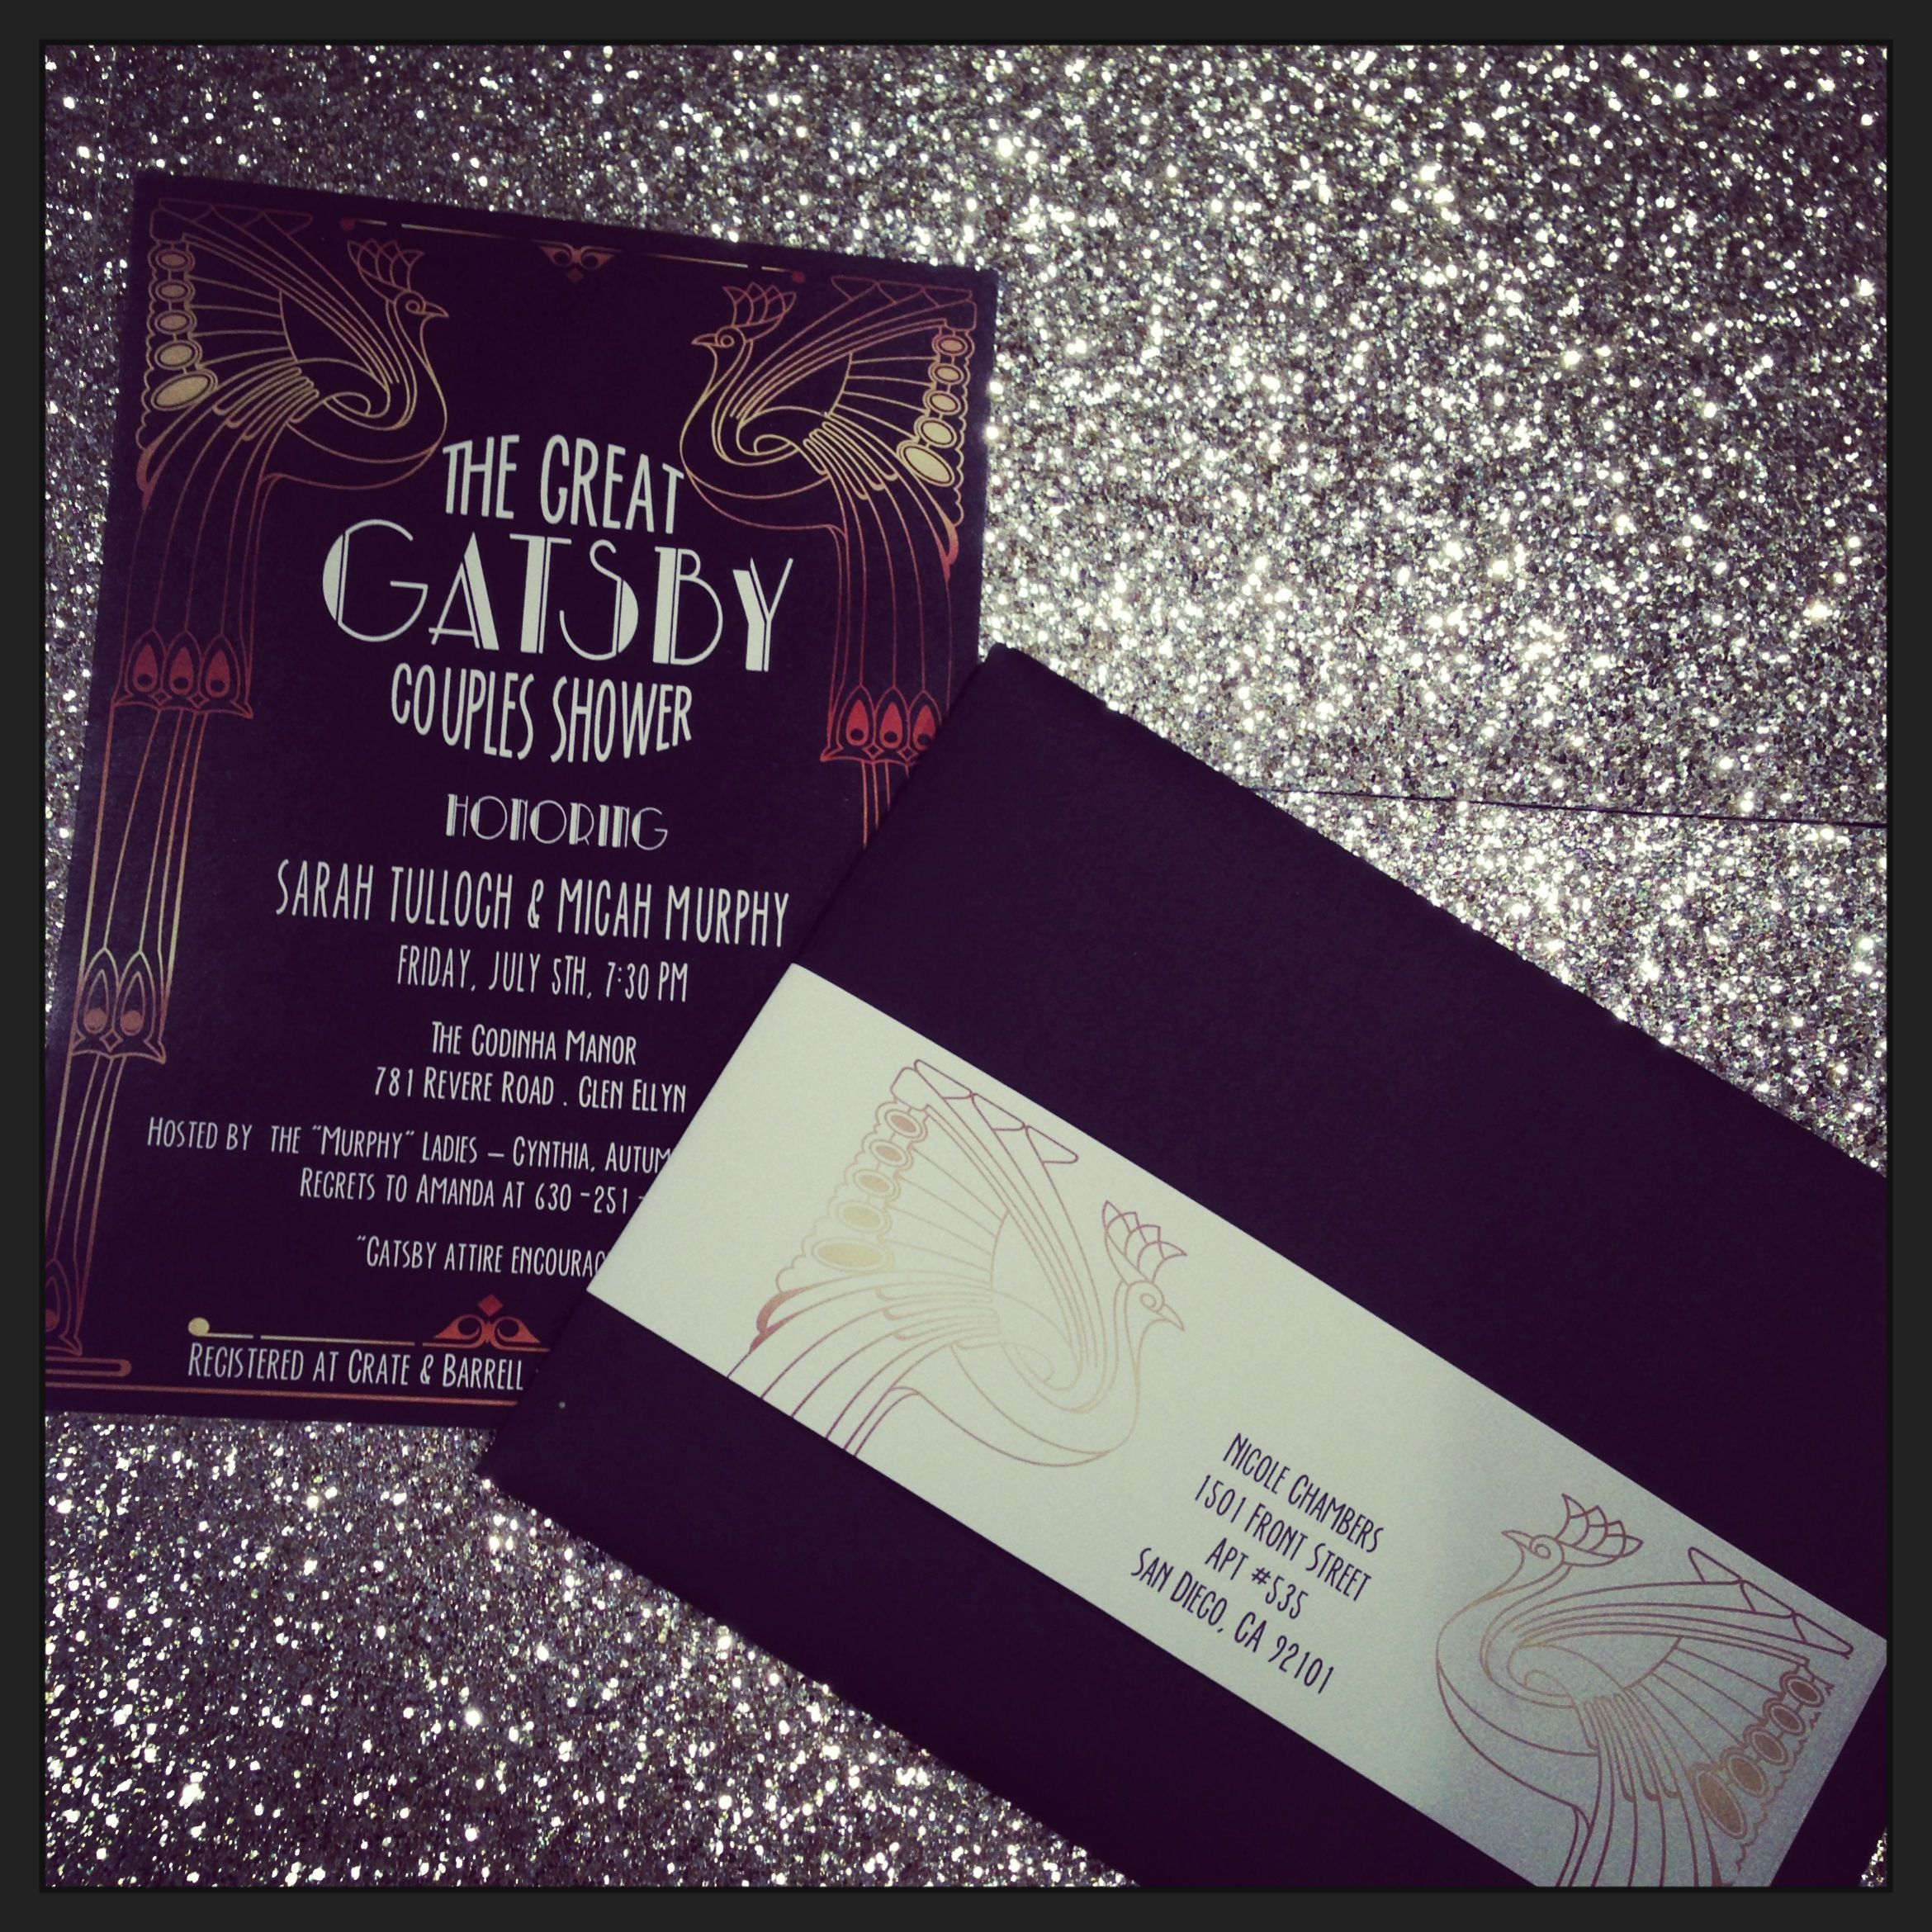 Great Gatsby party invite | Maria Bella Boutique Events | Pinterest ...